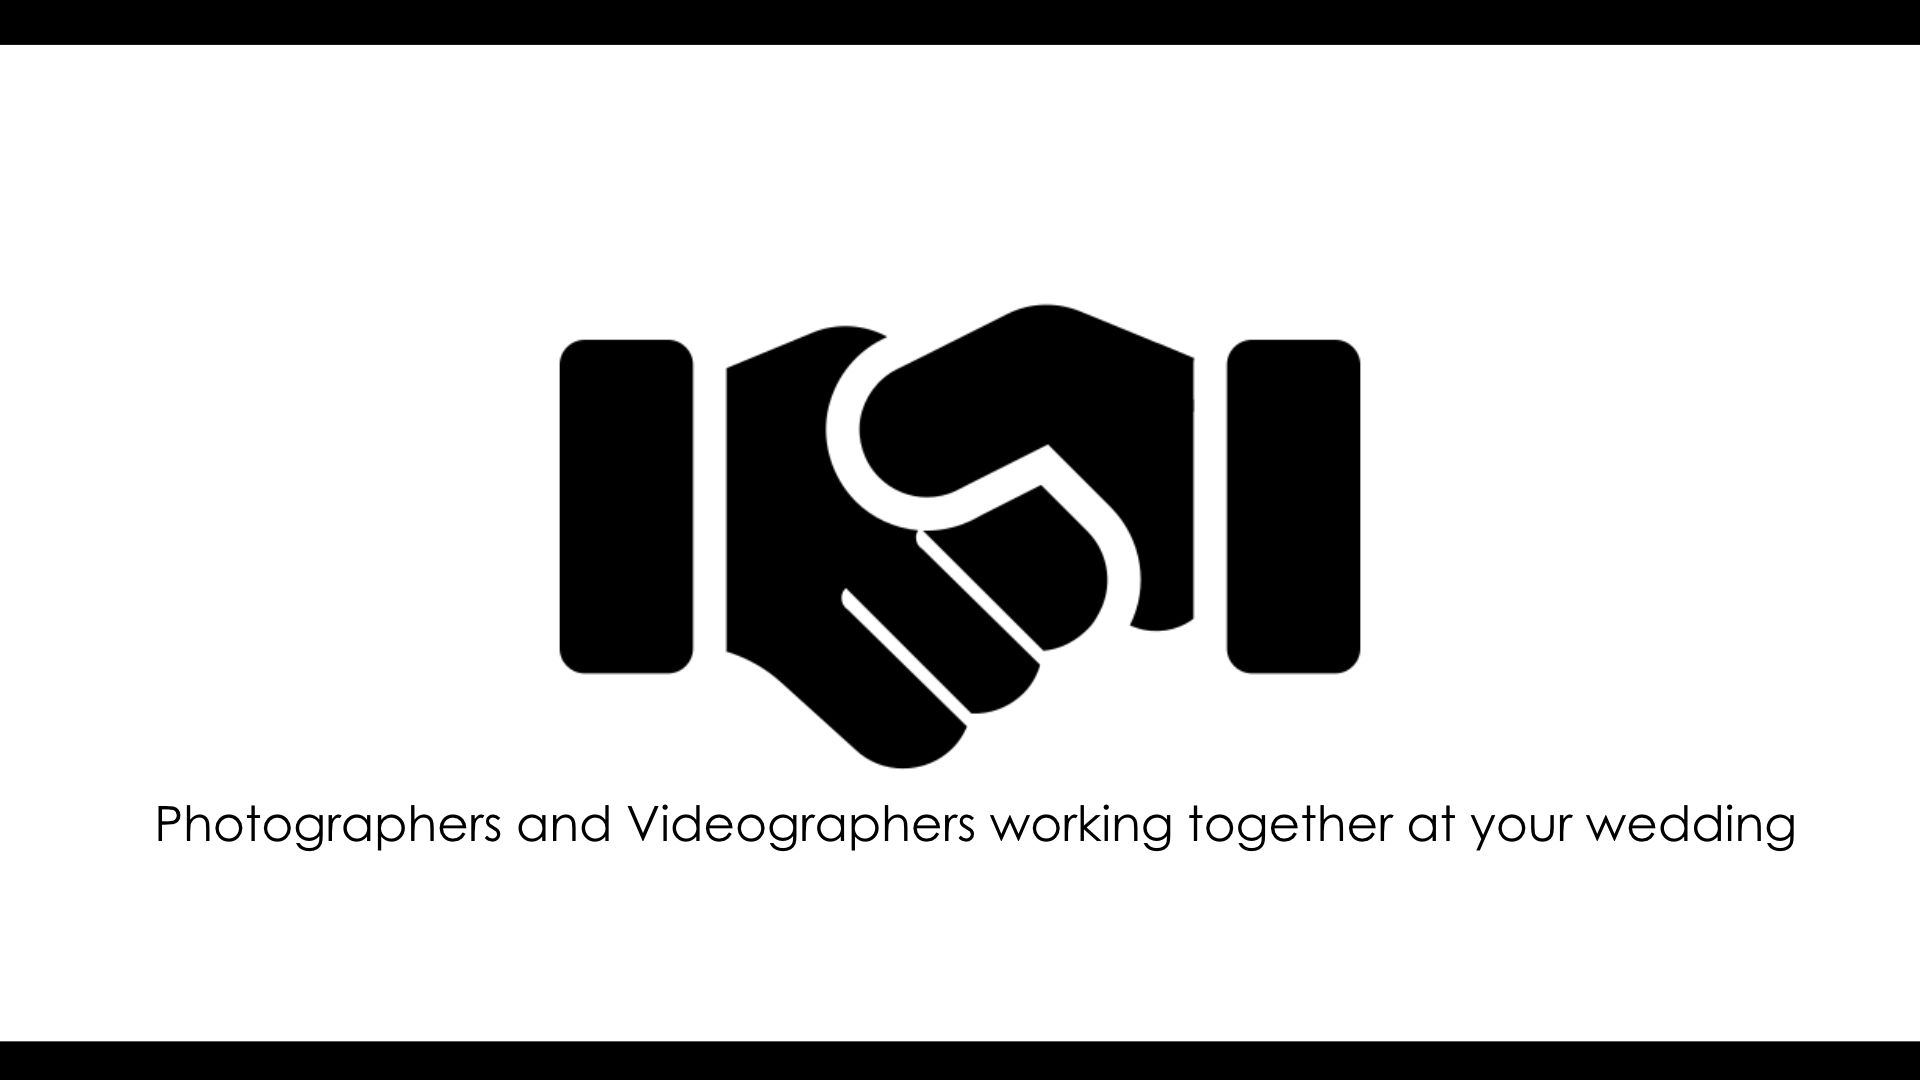 How videographers and Photographers work together at a wedding